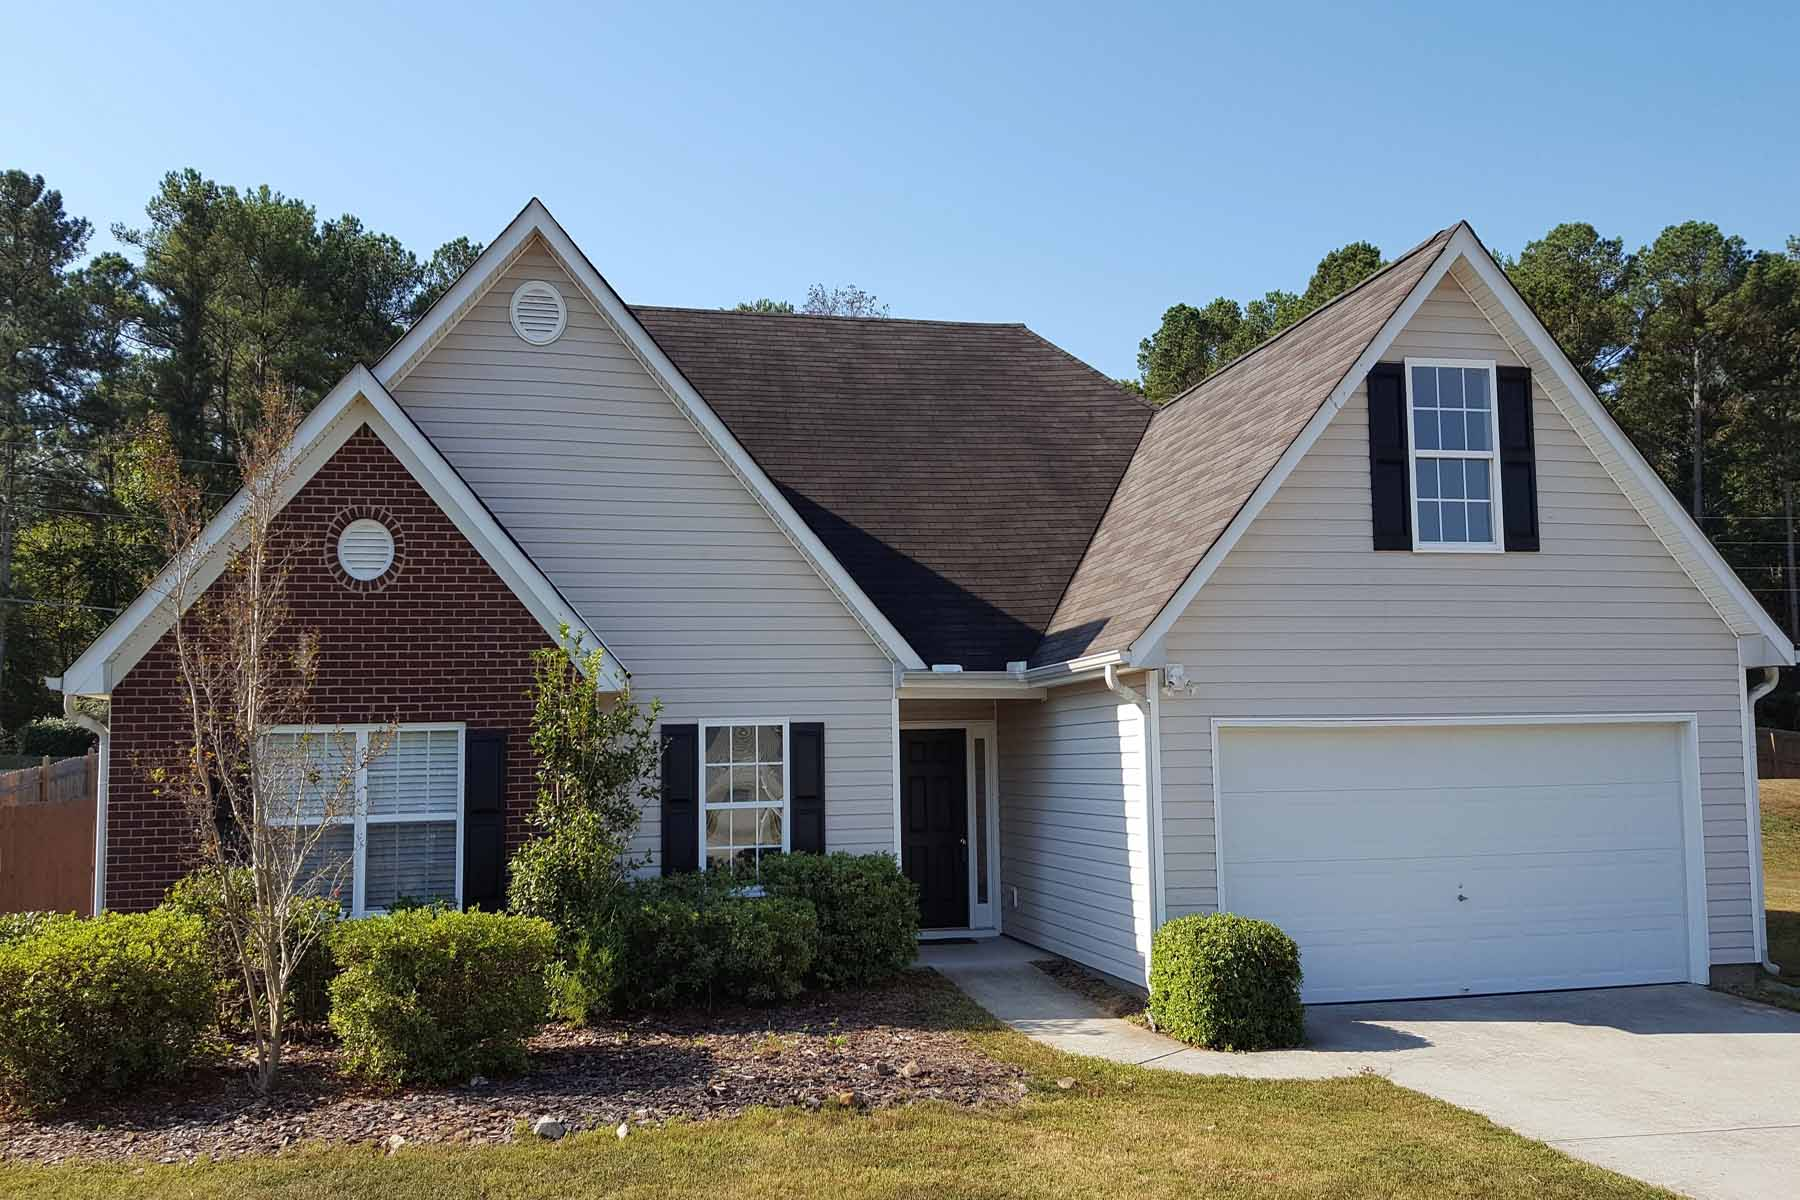 Additional photo for property listing at A Gwinnett Ranch Home with Bonus Room on Spacious Fenced Corner Lot 3396 Madison Ridge Trail Snellville, 喬治亞州 30039 美國